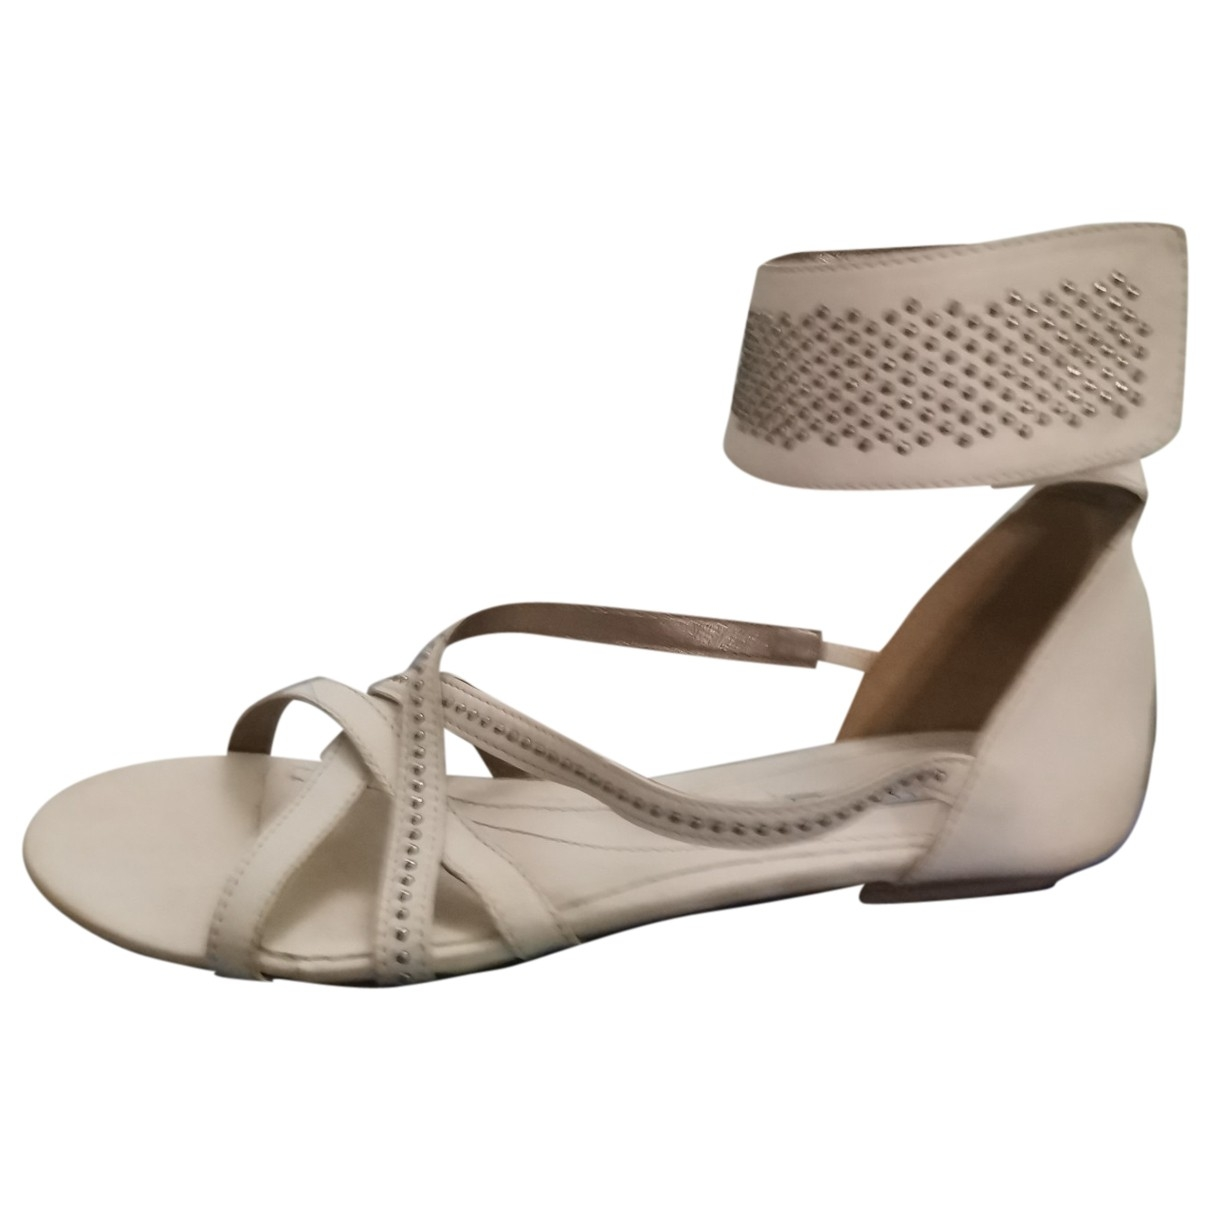 Vic Mati?? \N Beige Leather Sandals for Women 36 EU